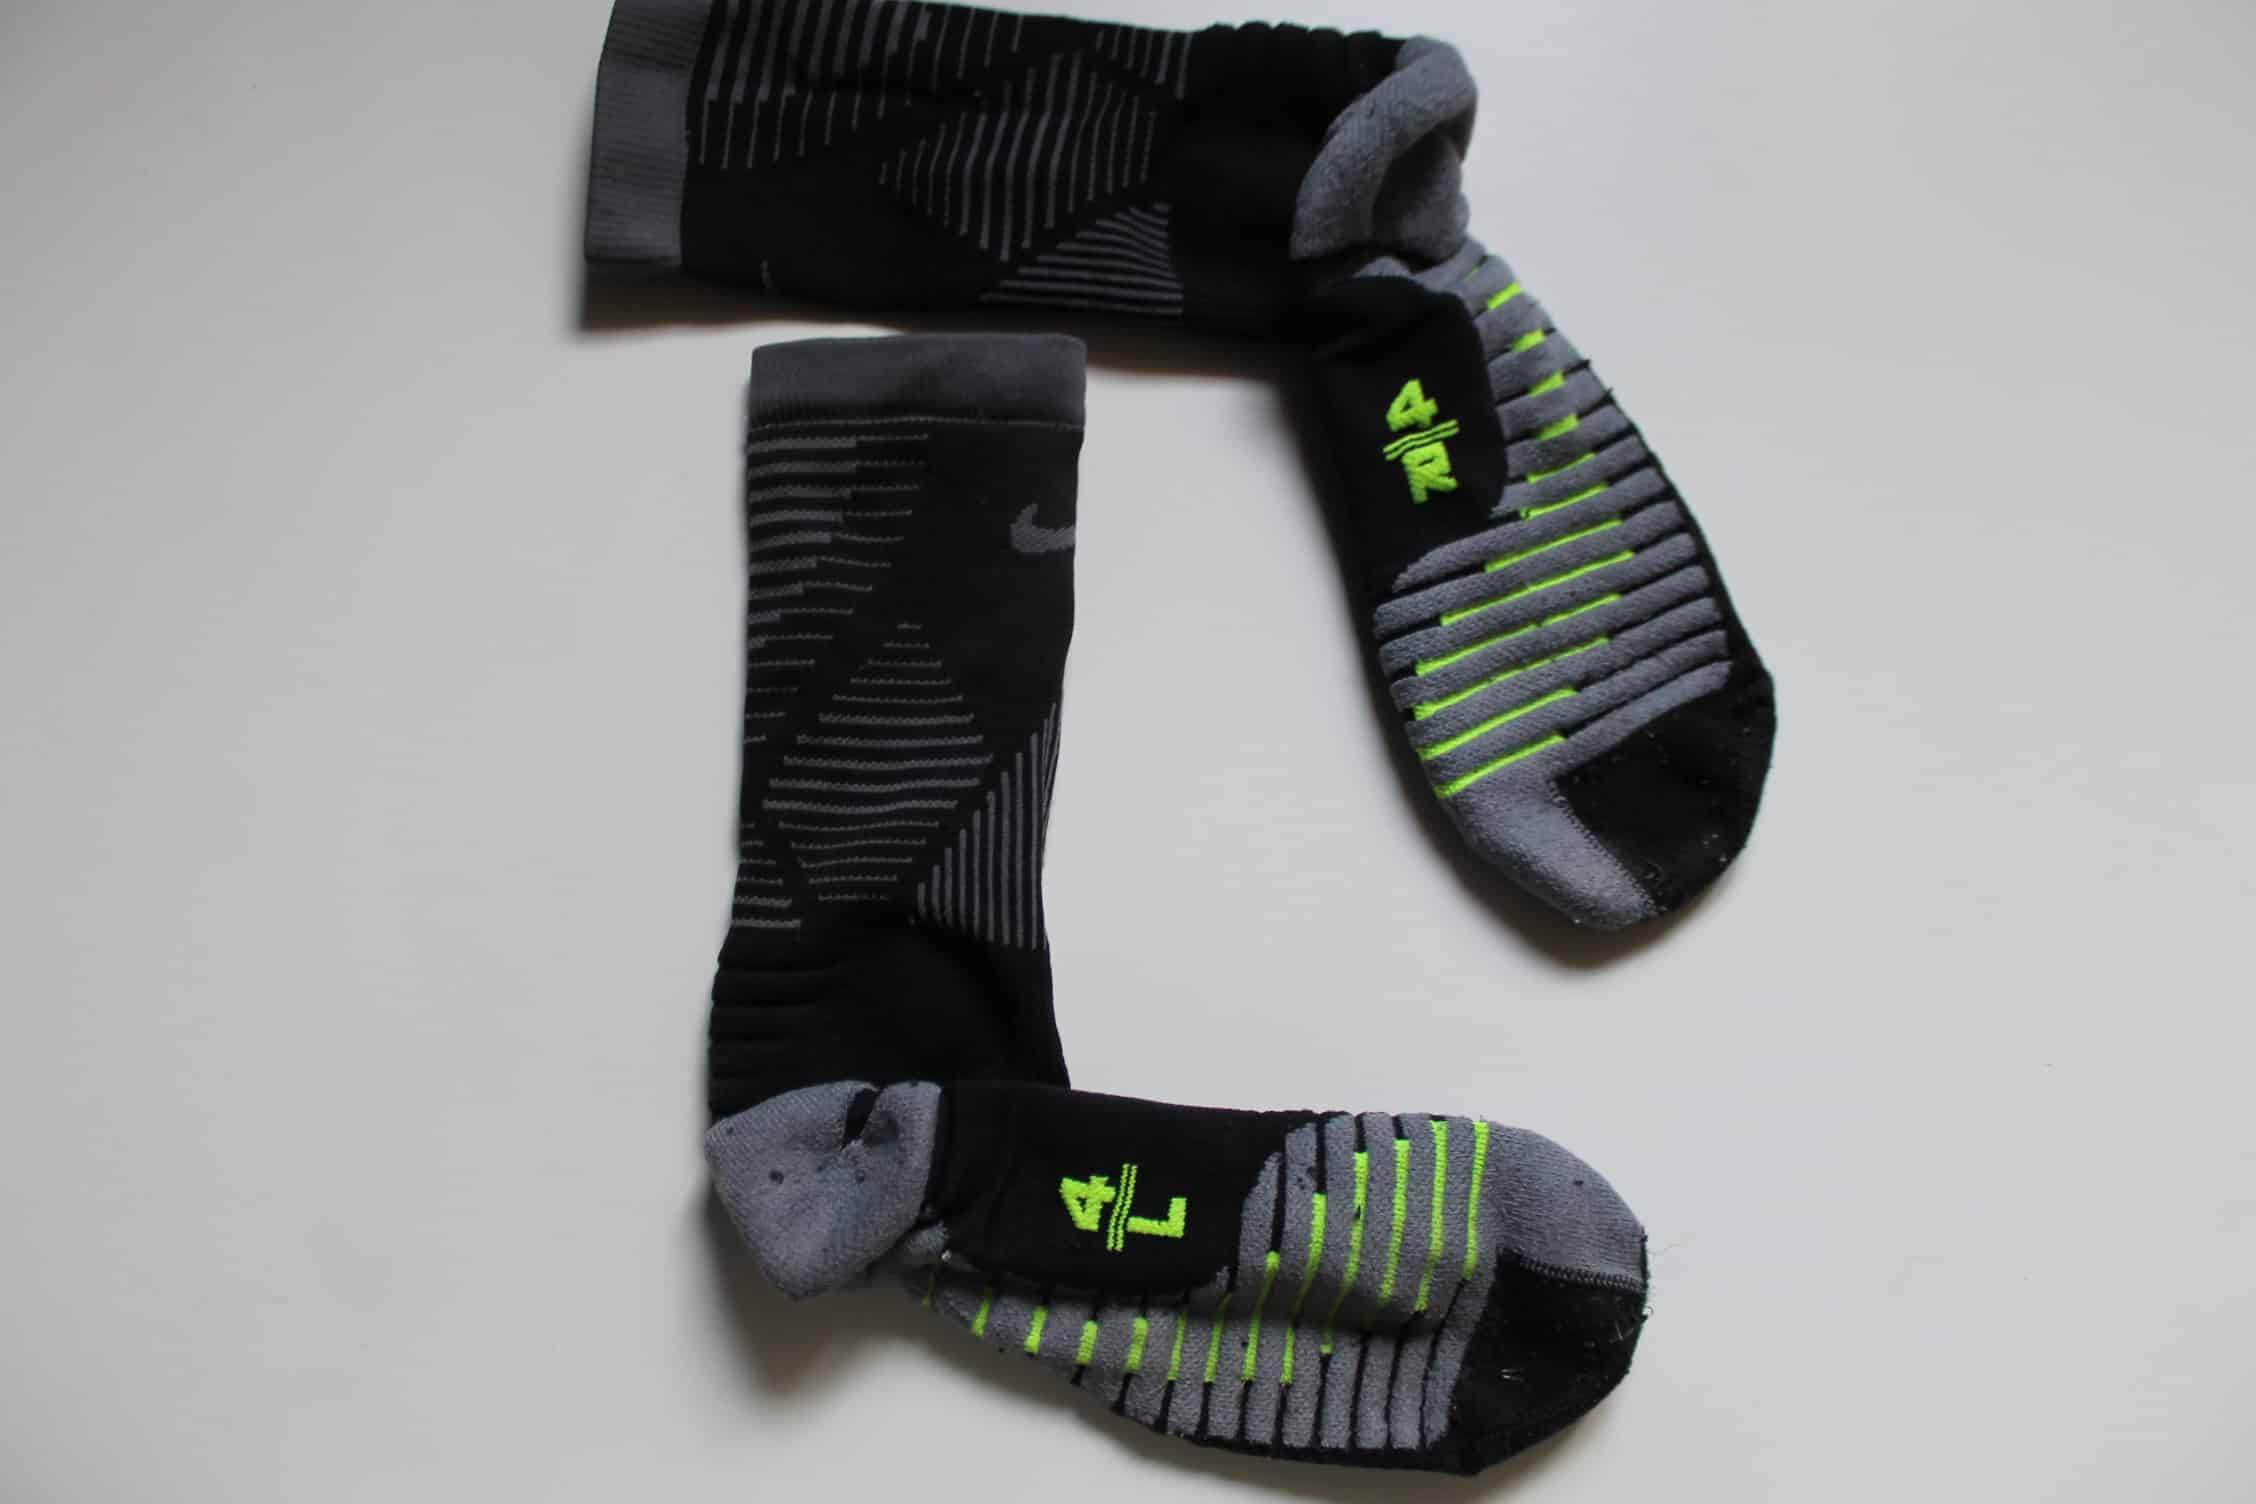 test-chaussettes-nike-grip-img14